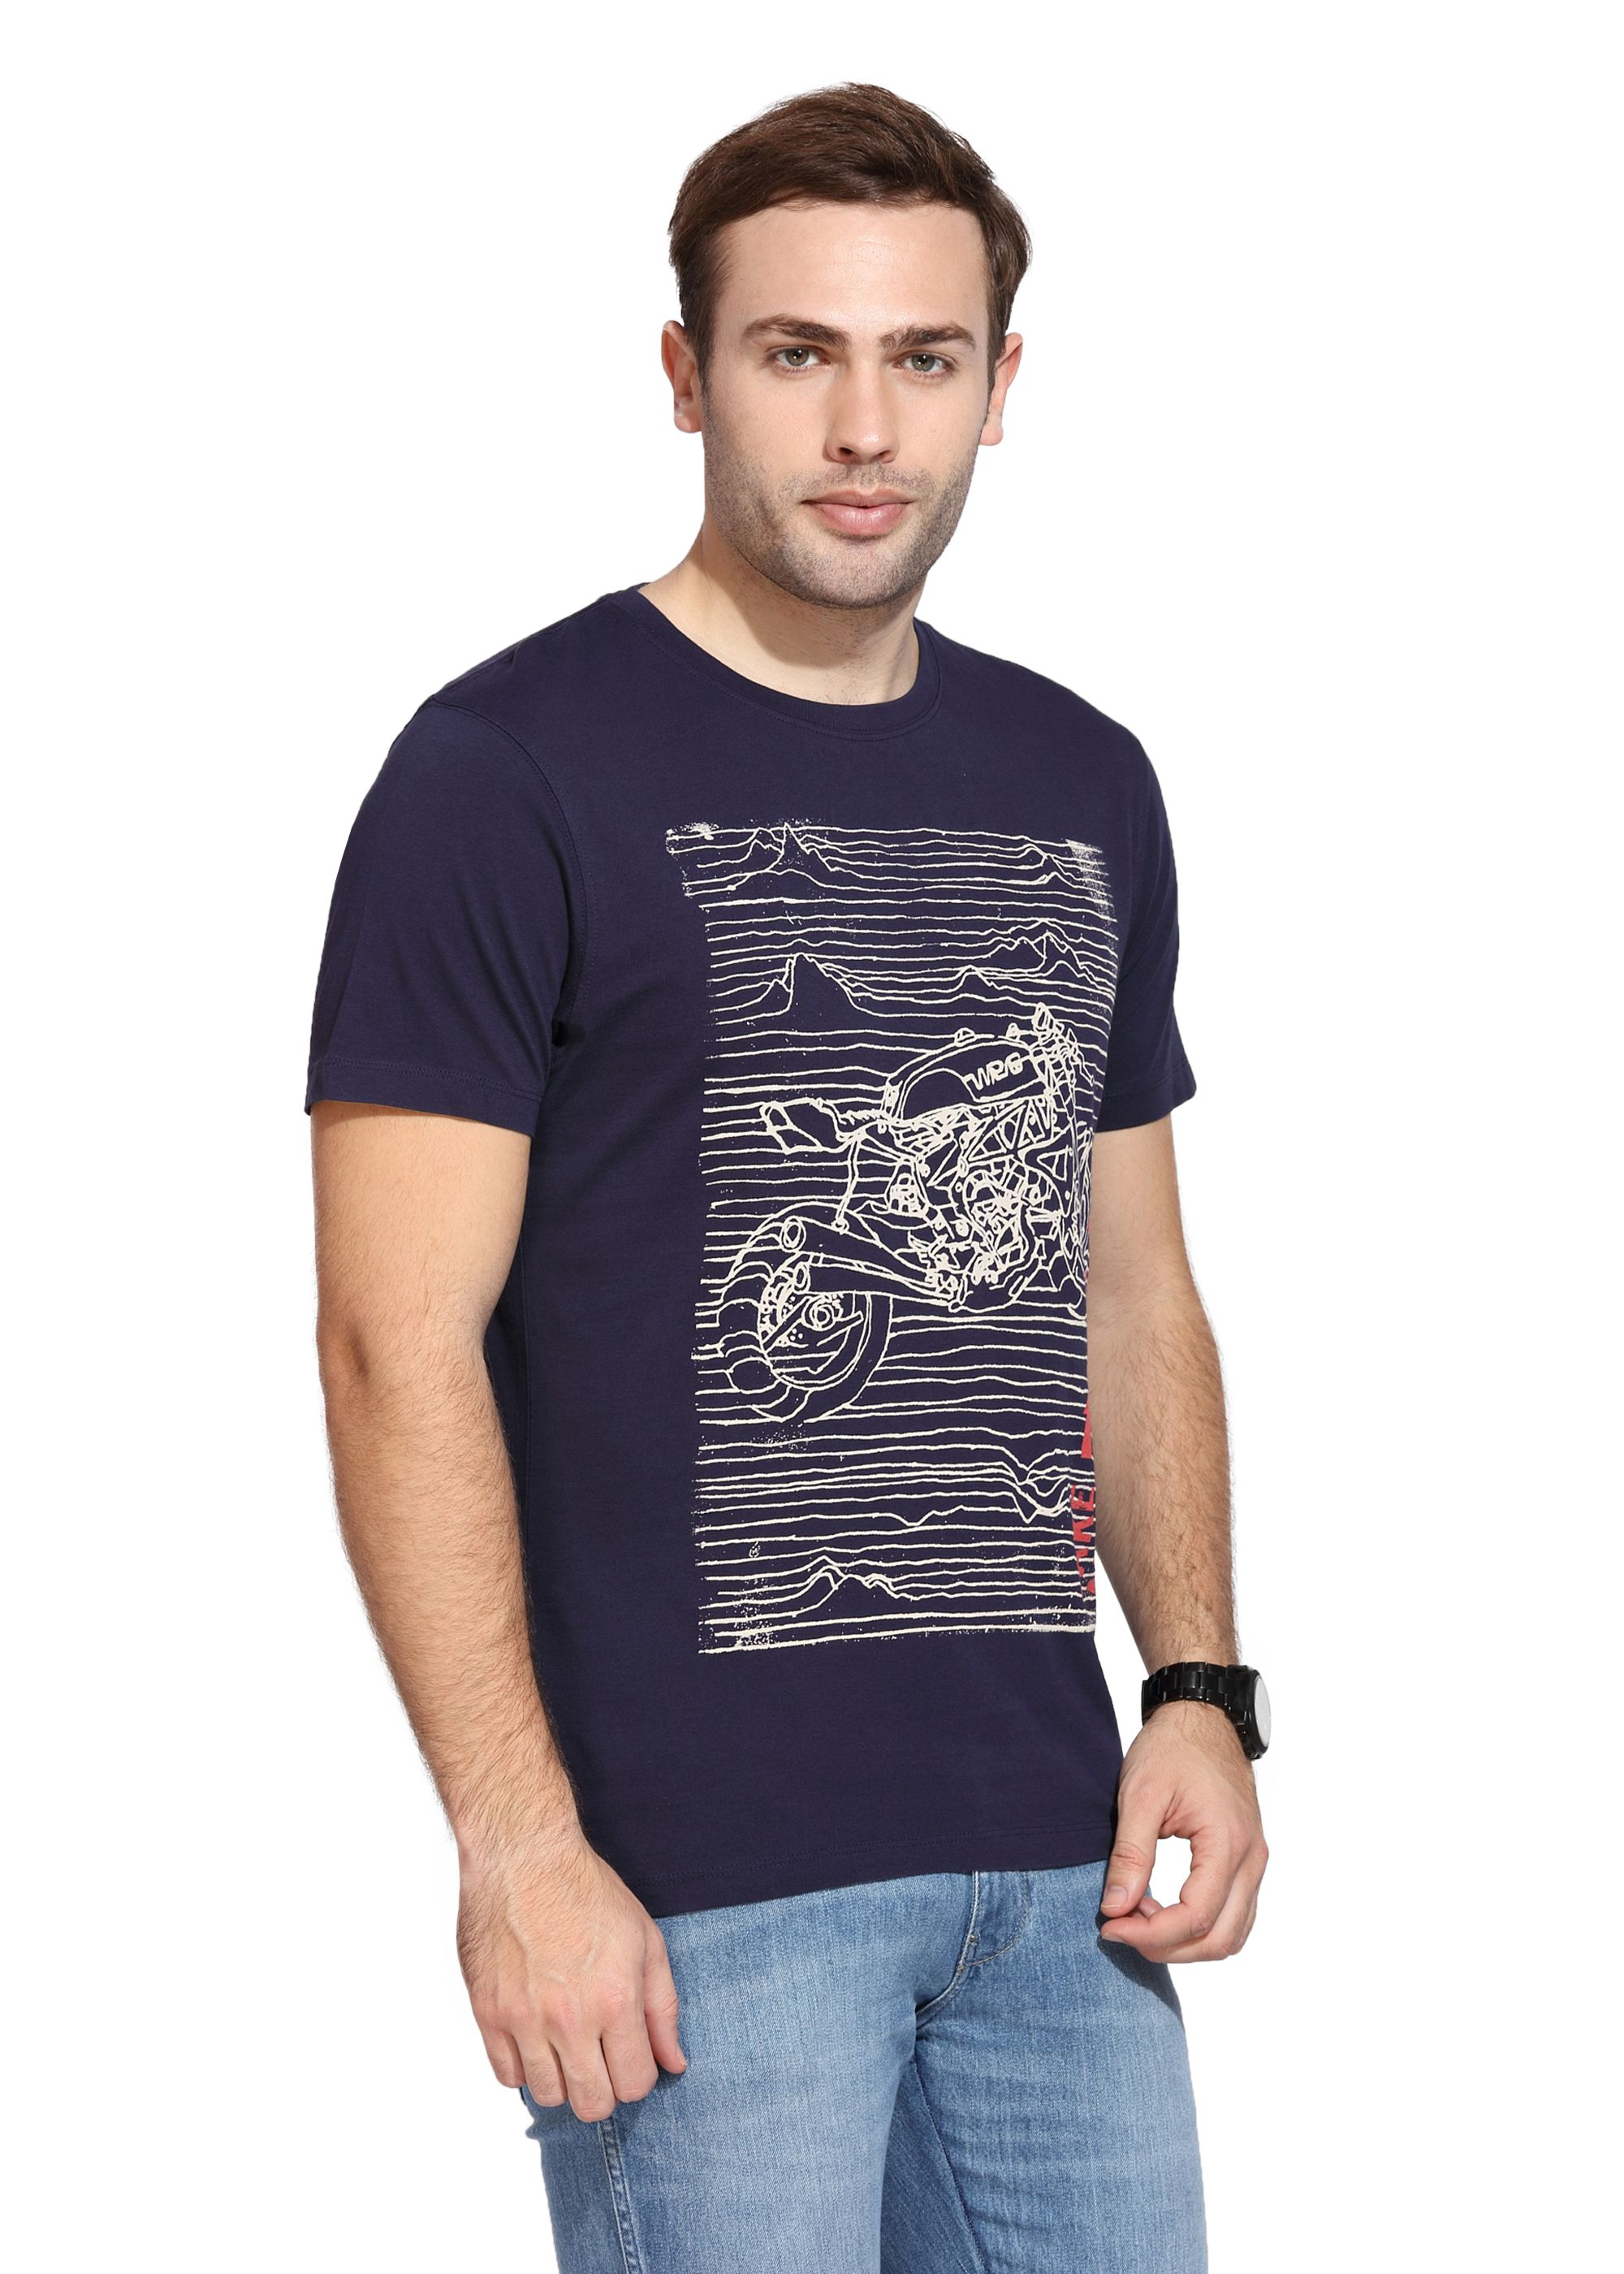 849d64a7 Wrangler Navy Round T-Shirt - Buy Wrangler Navy Round T-Shirt Online at Low  Price - Snapdeal.com